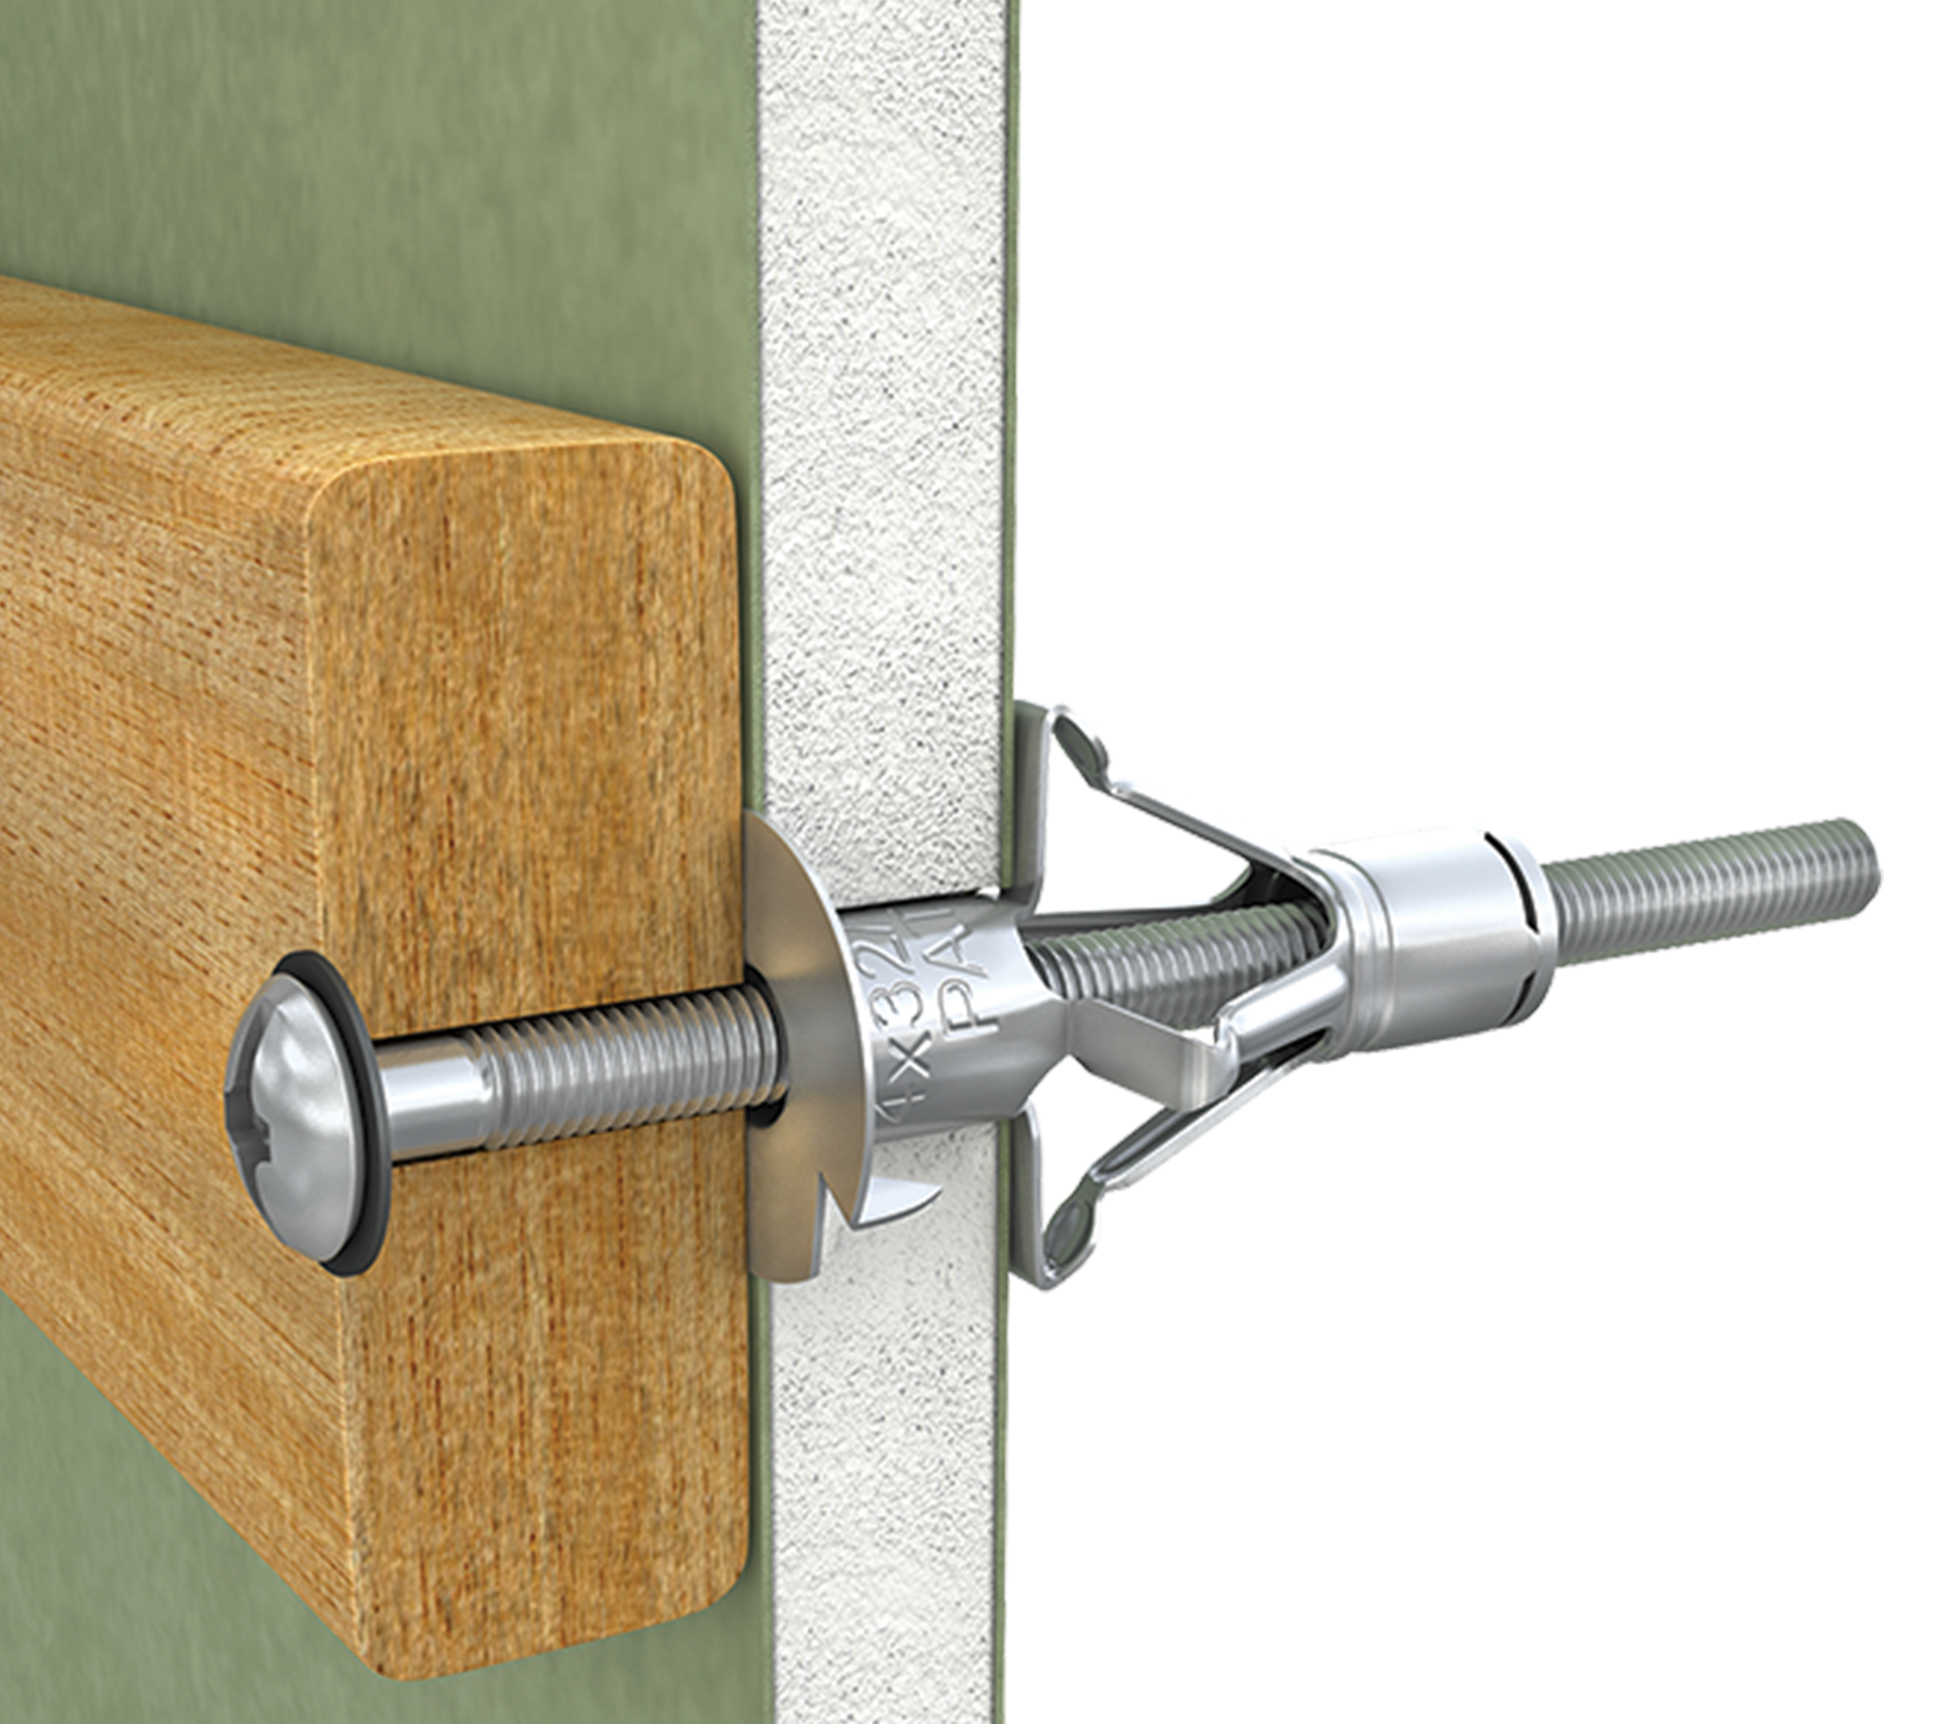 Metal self drill fixing for plasterboard